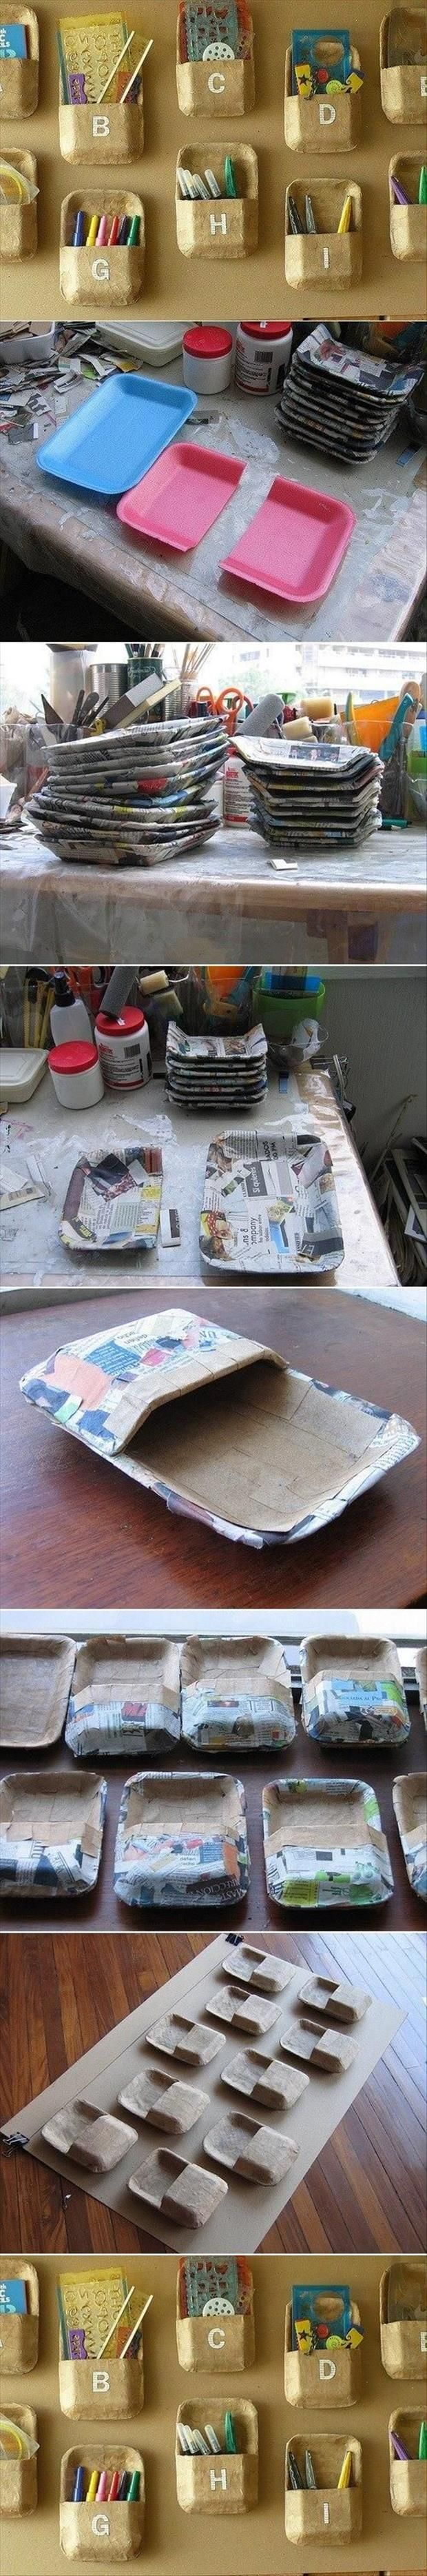 Fun Do It Yourself Craft Ideas - 45 Pics - Dump A Day